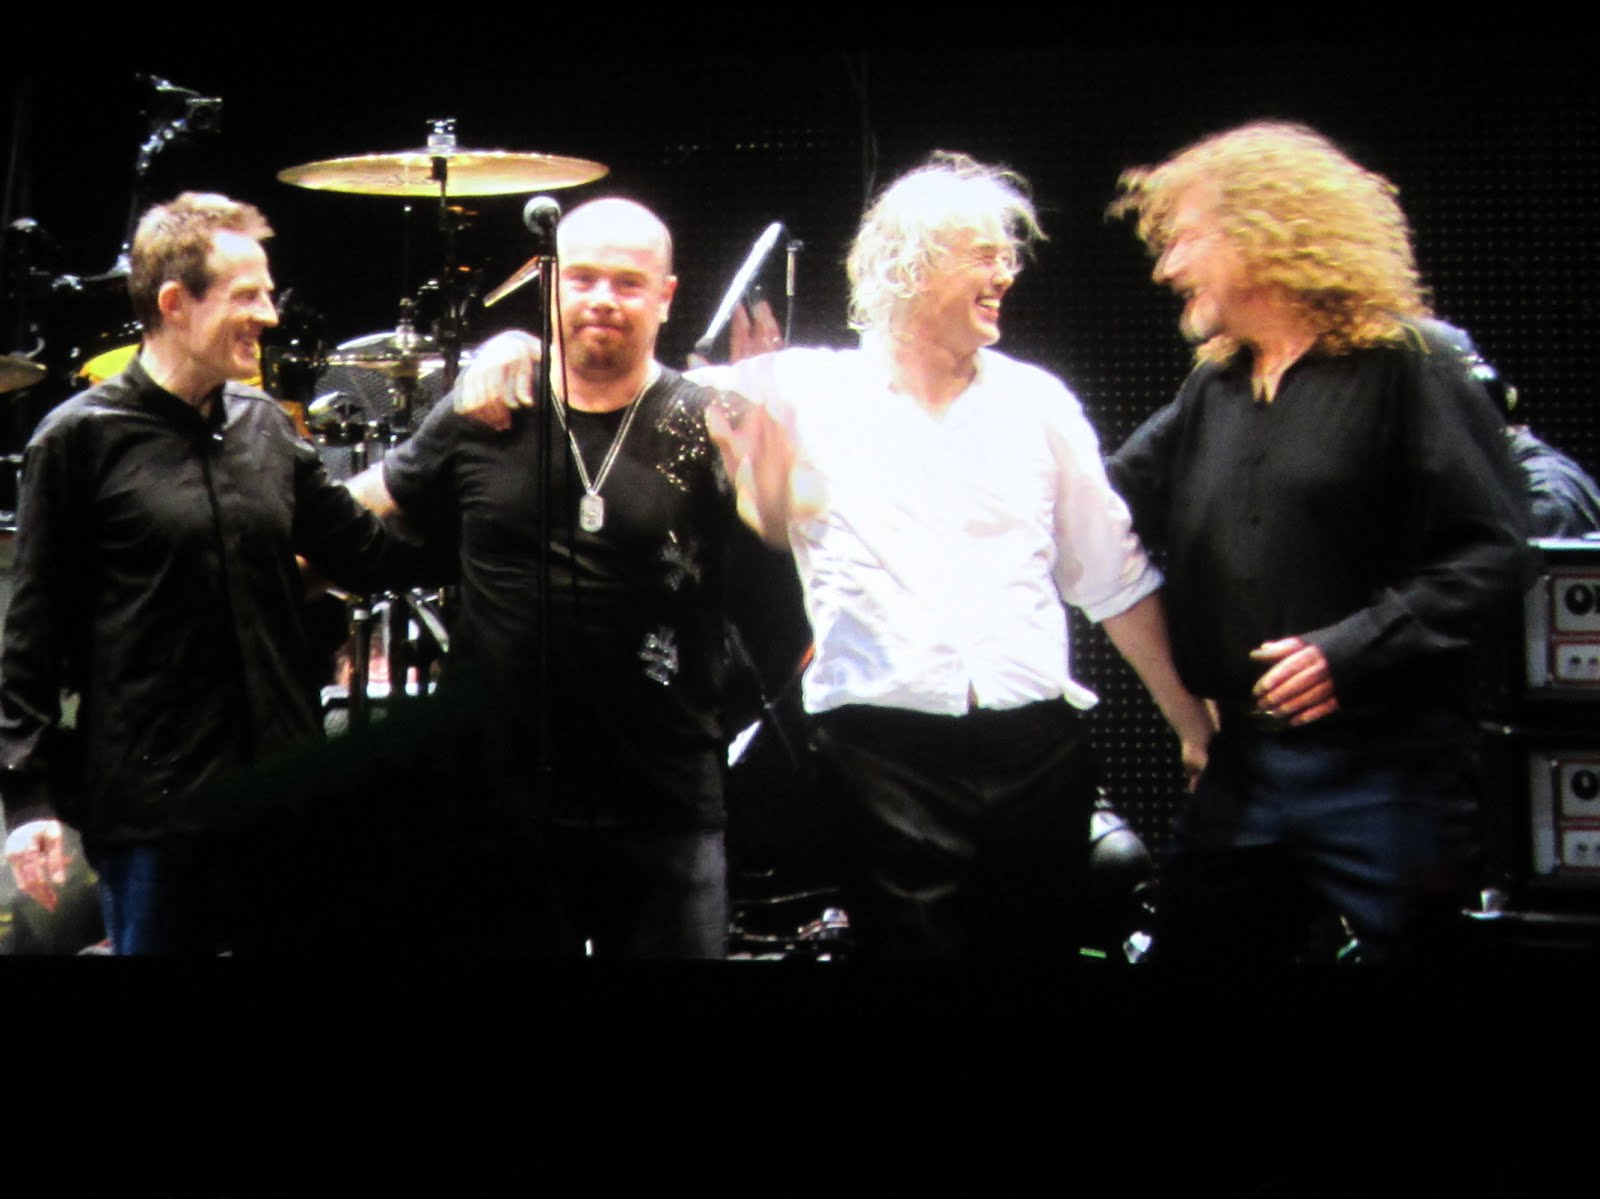 Led zeppelins 2007 reunion concert @ o2 in london to be released on dvd on nov 19 2012